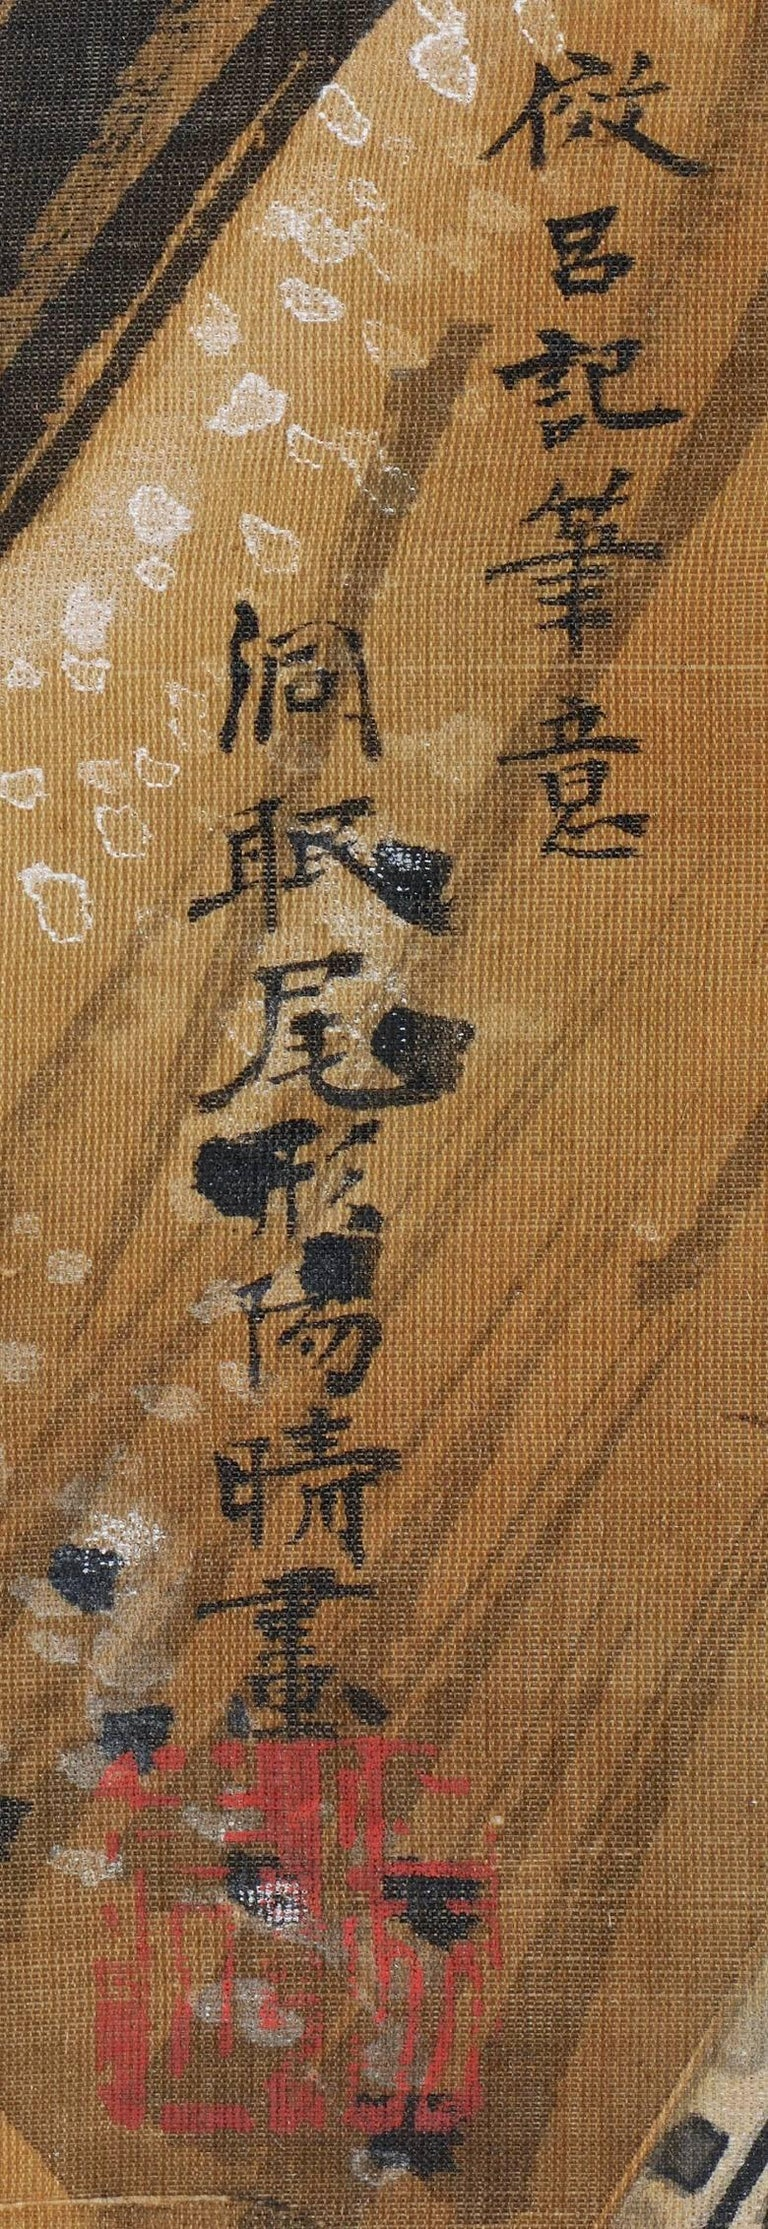 Hand-Painted Ogata Tomin (1839-1895), Manner of Lu Ji, Japanese Bird and Flower Painting For Sale